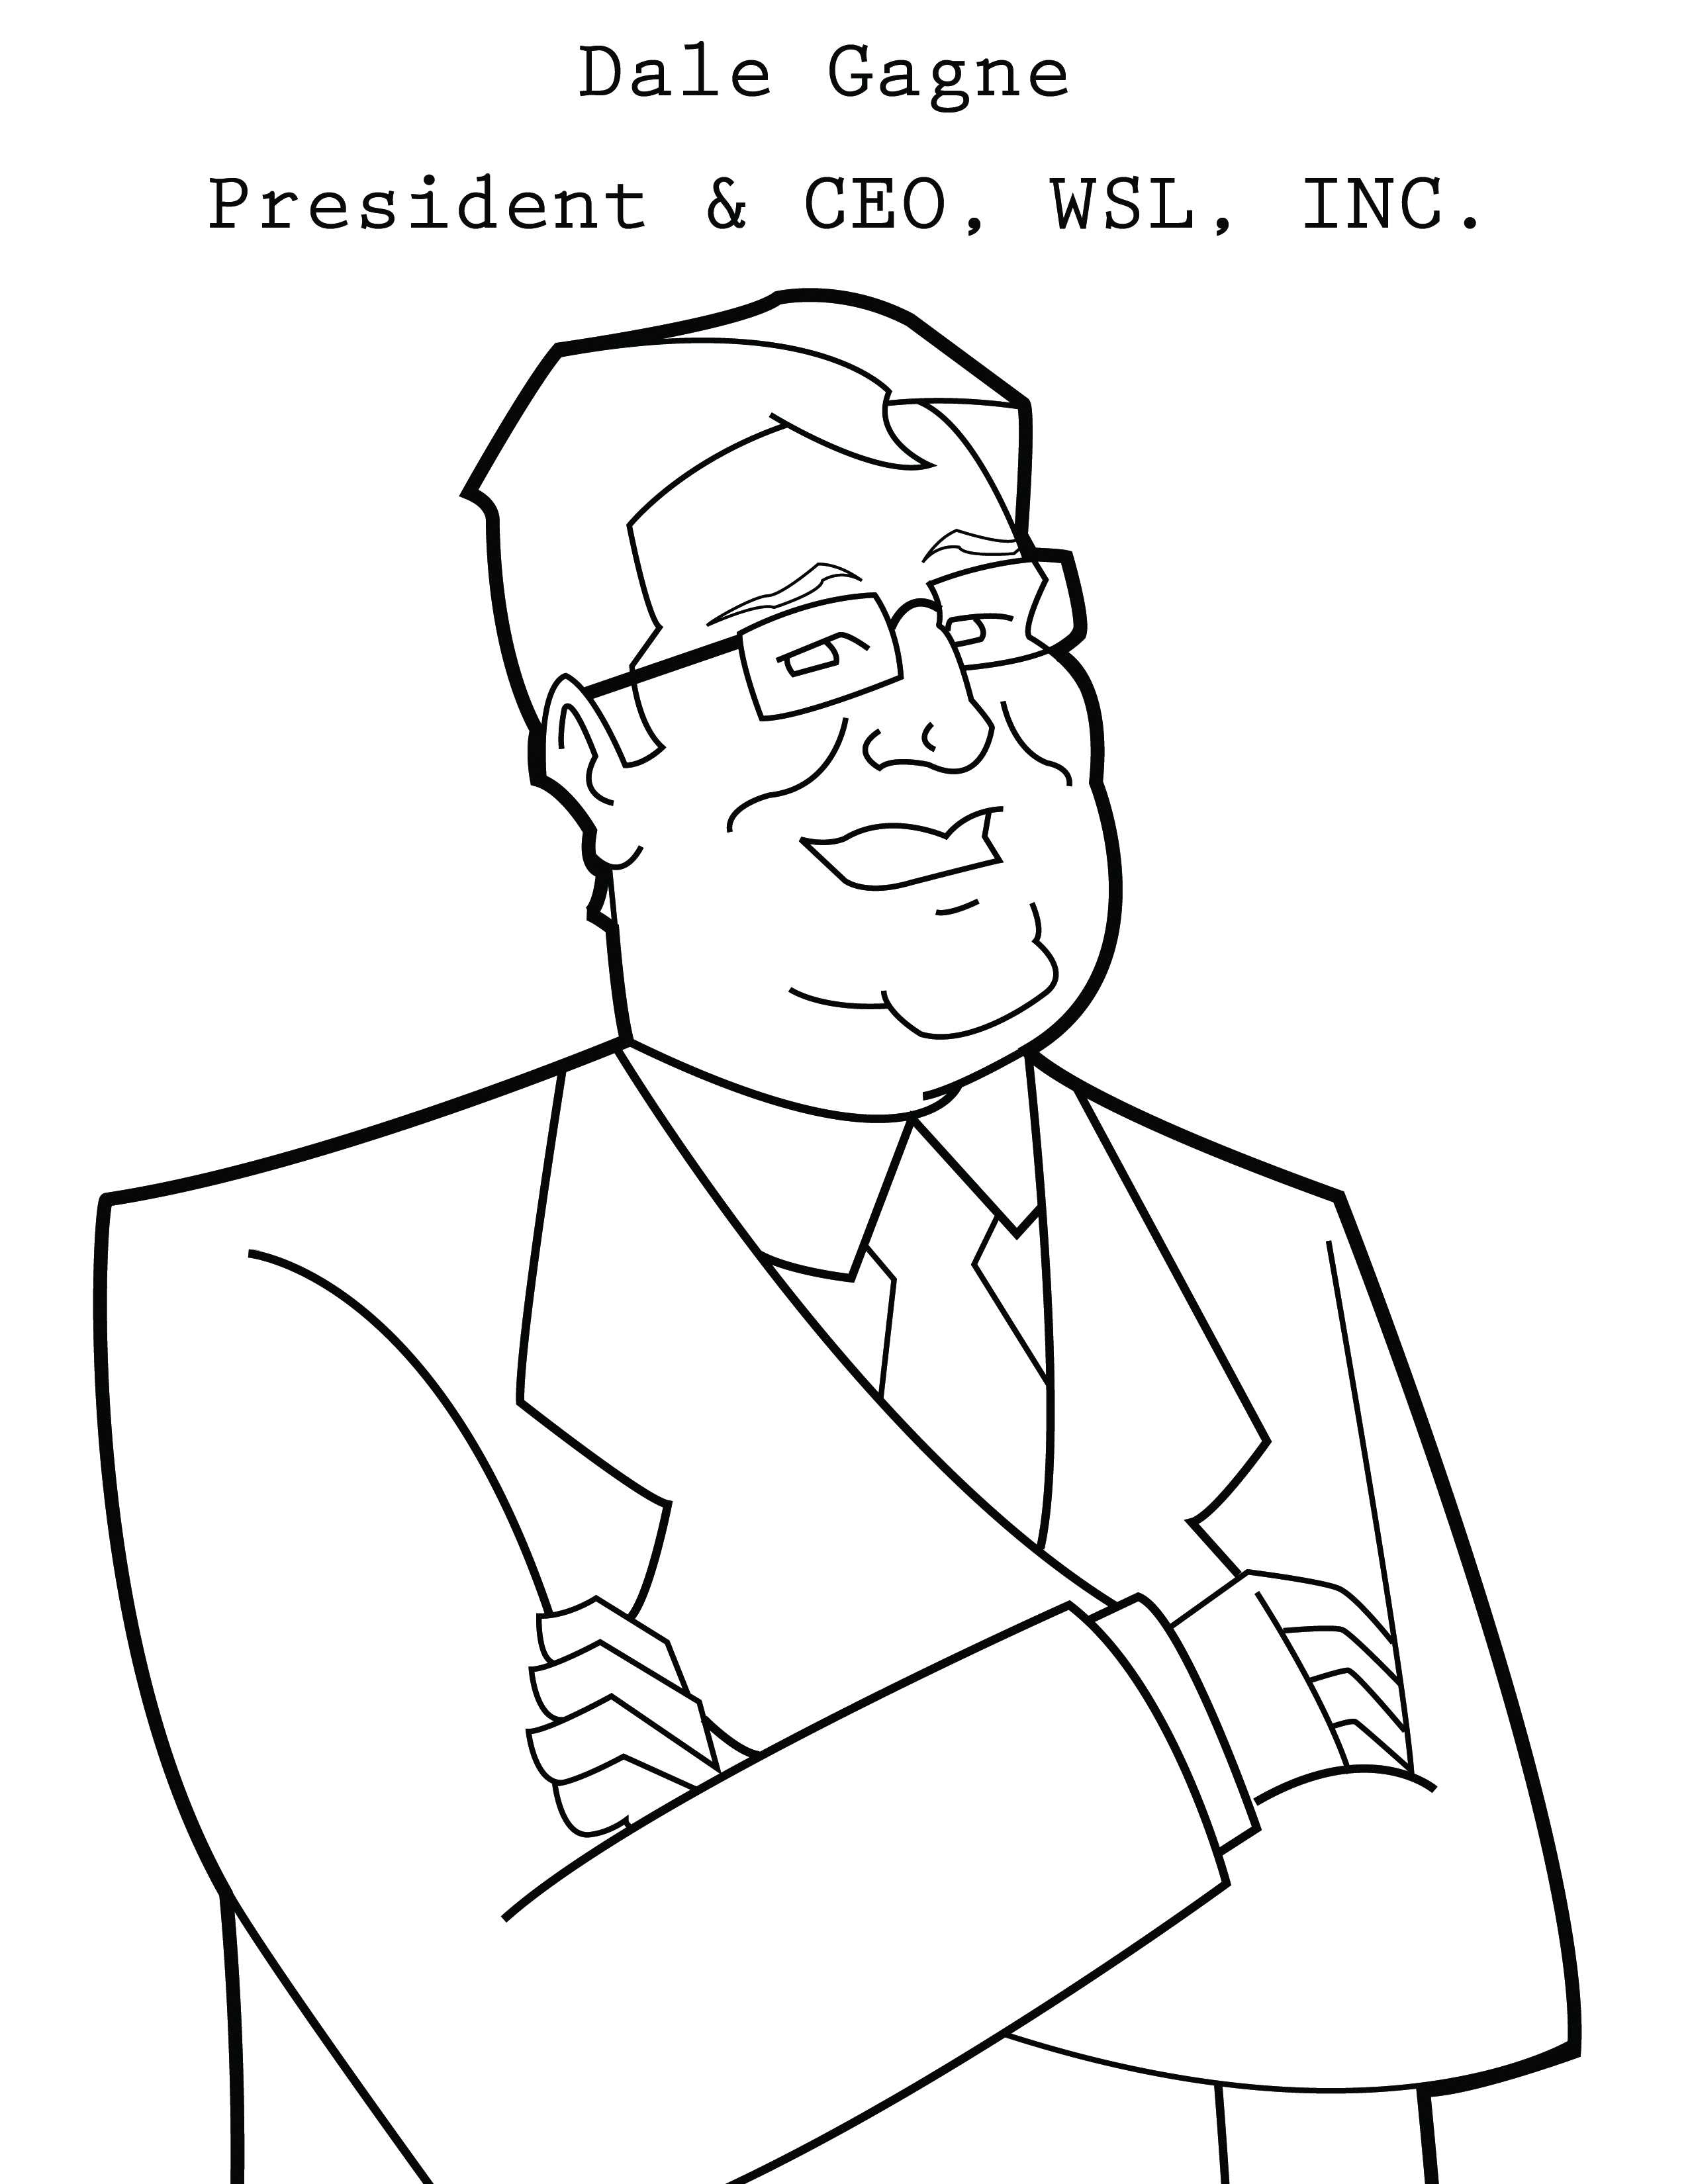 john cena coloring pages - photo#36